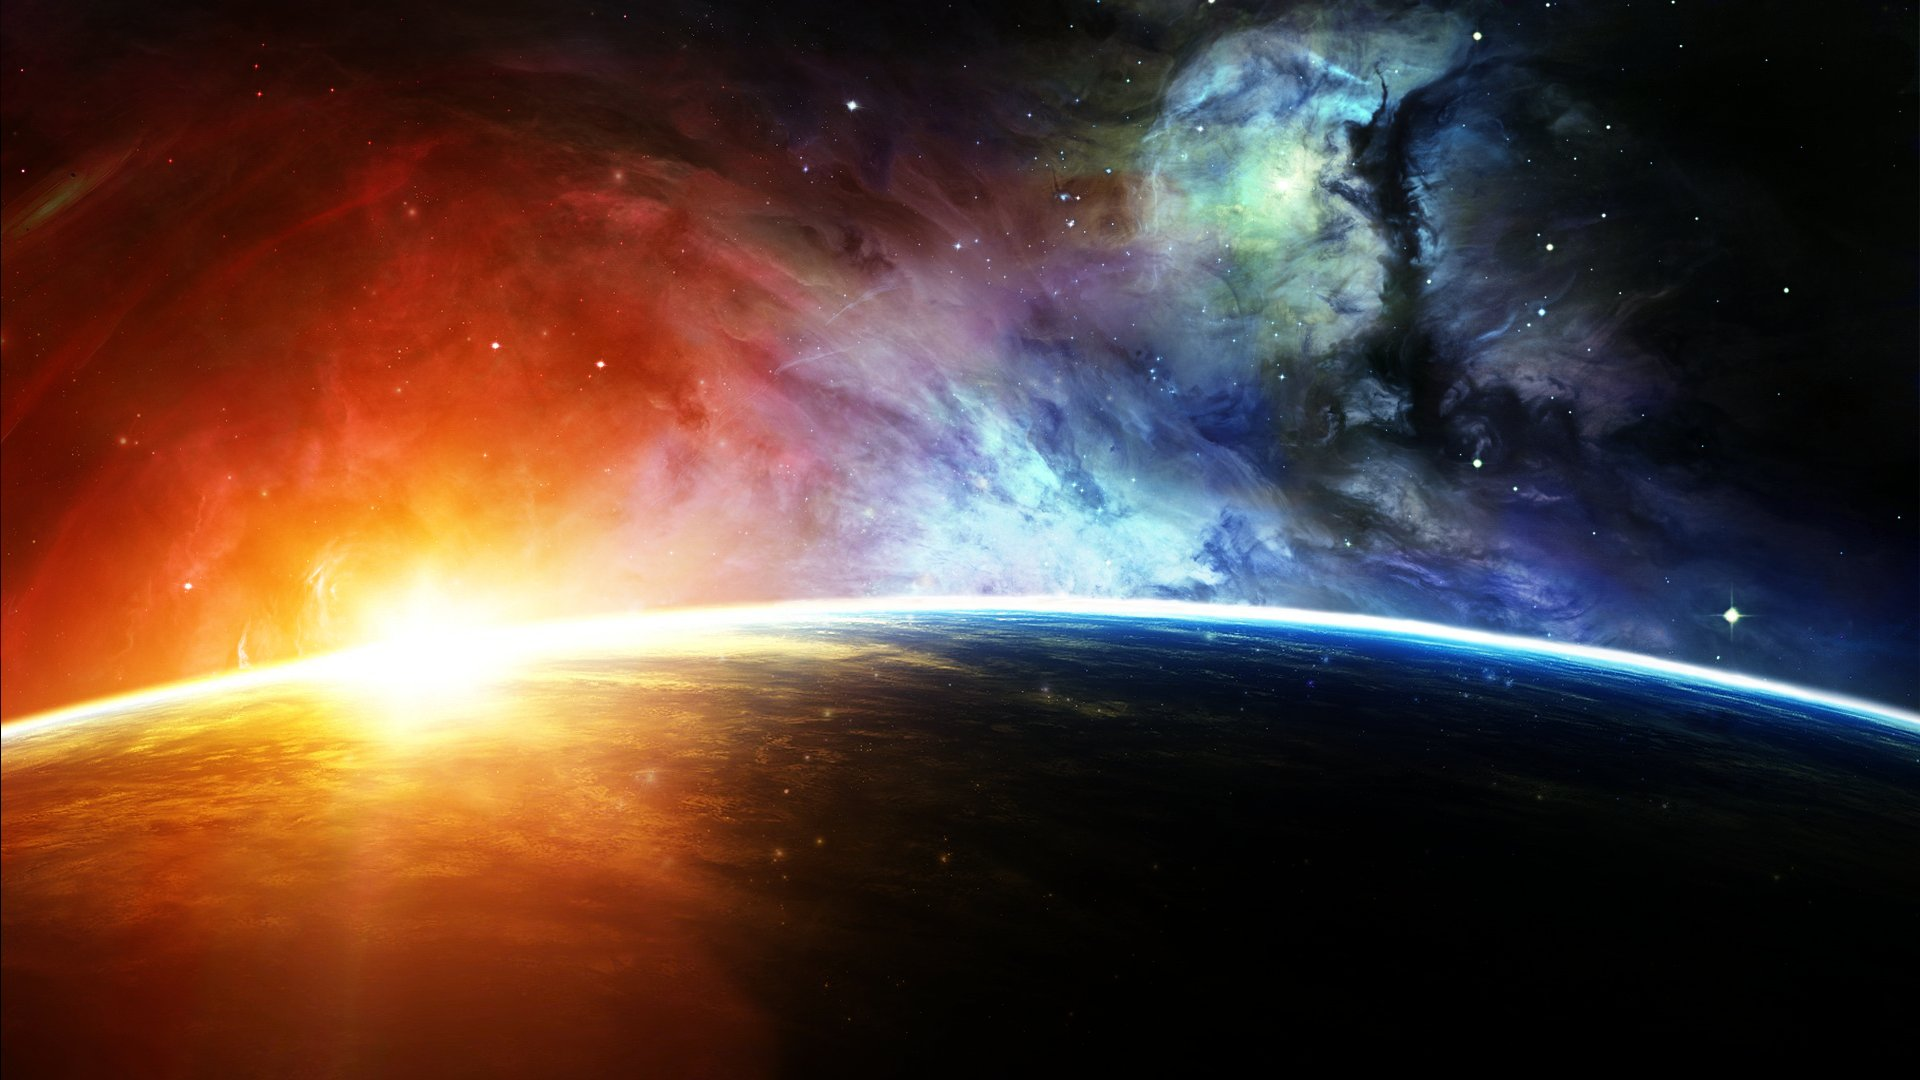 space wallpaper 1920x1080